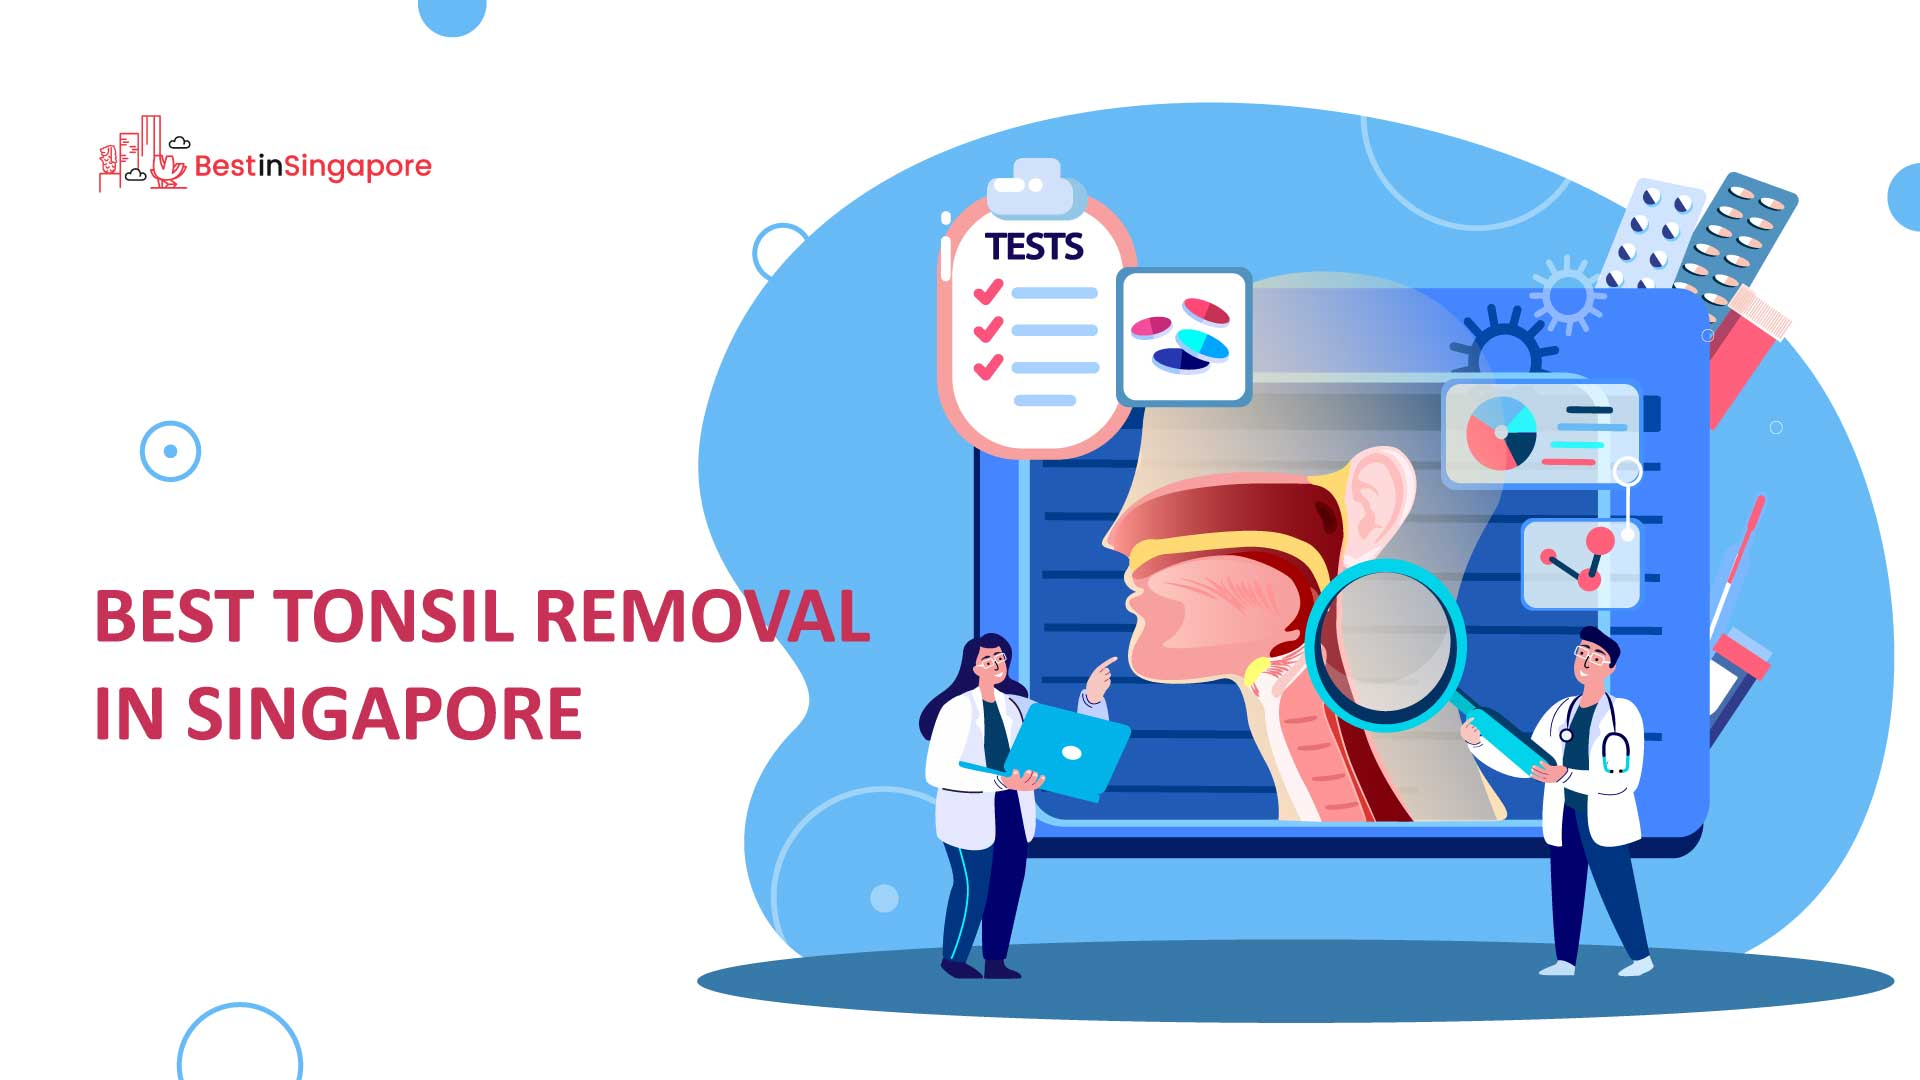 Best Tonsil Removal in Singapore